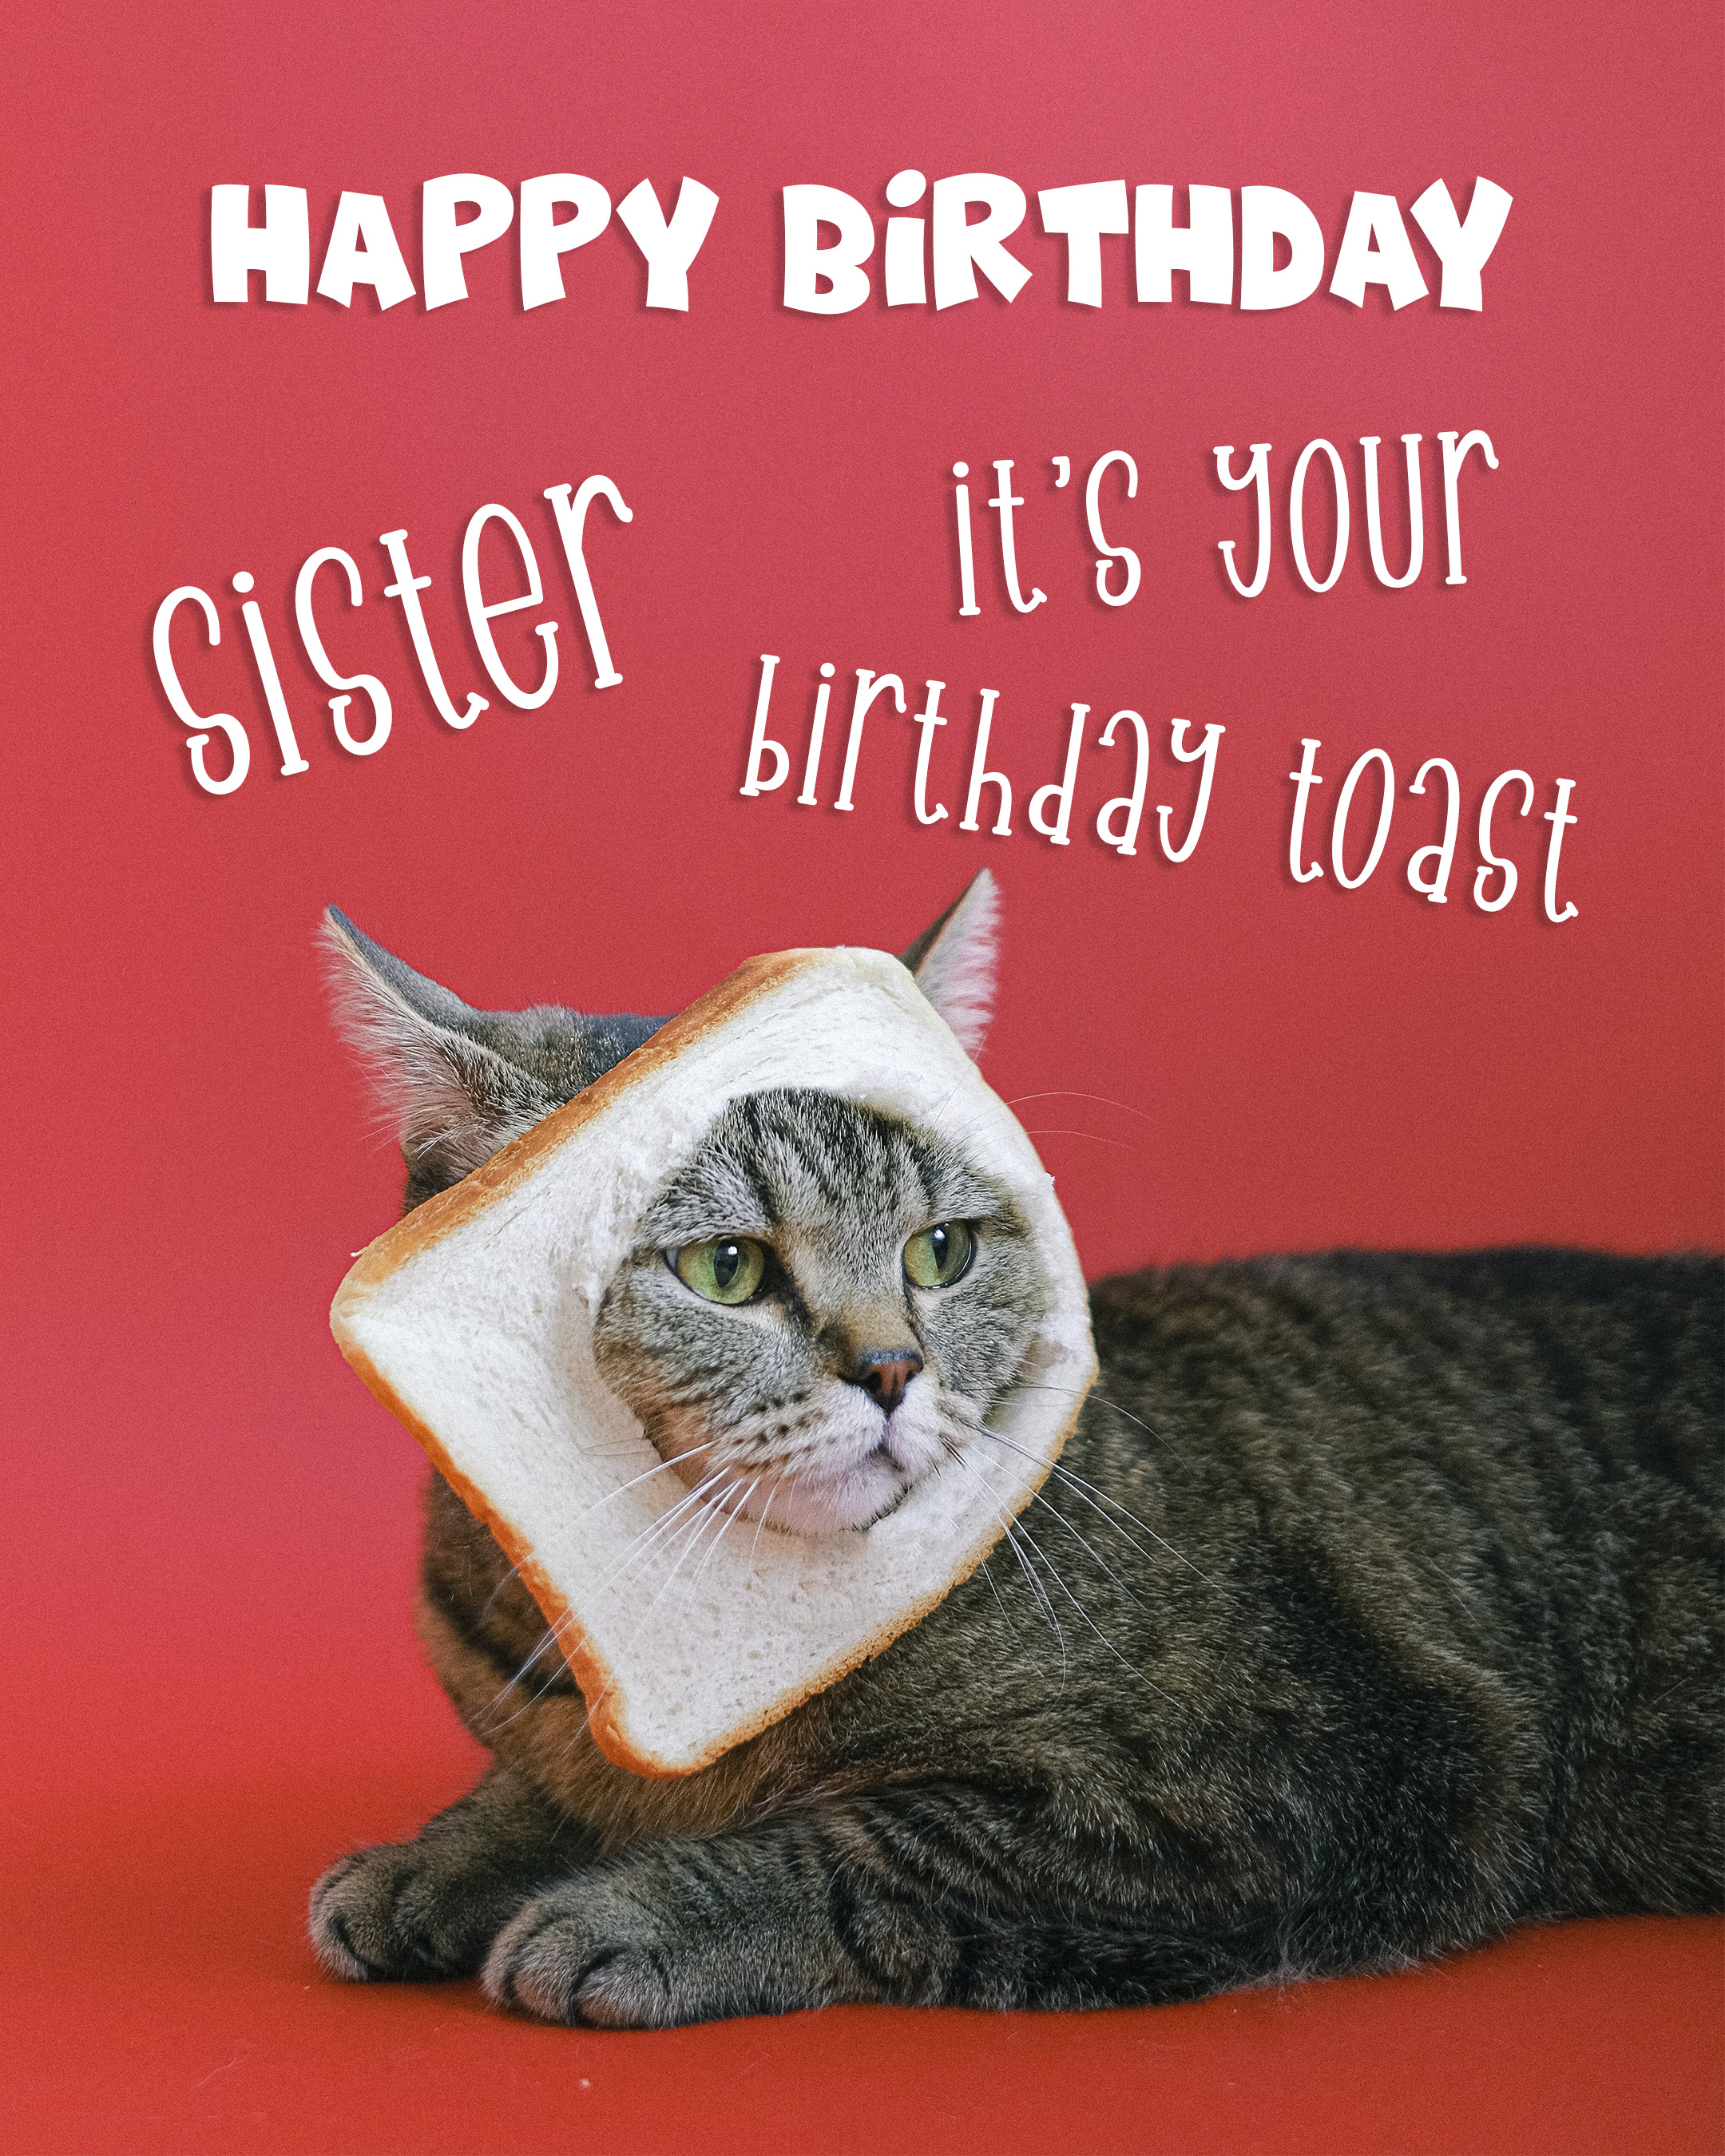 Free Happy Birthday Image For Sisters With Funny Cat - birthdayimg.com